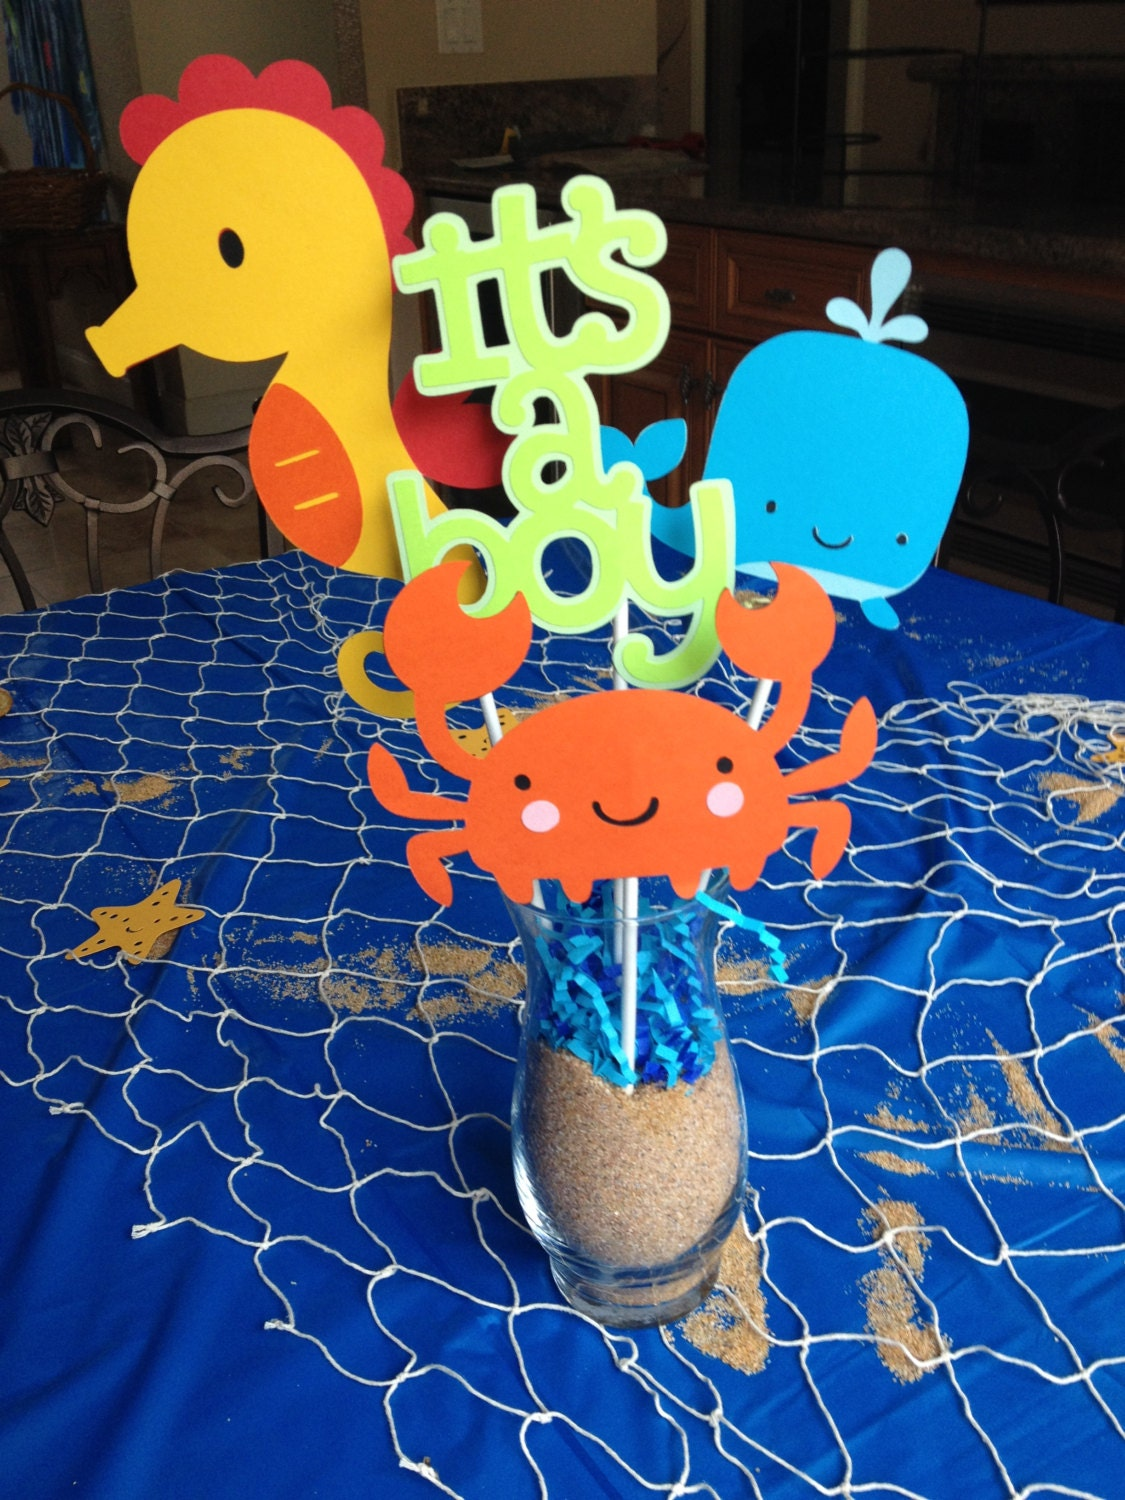 under the sea baby shower centerpieces by here4theparty on etsy